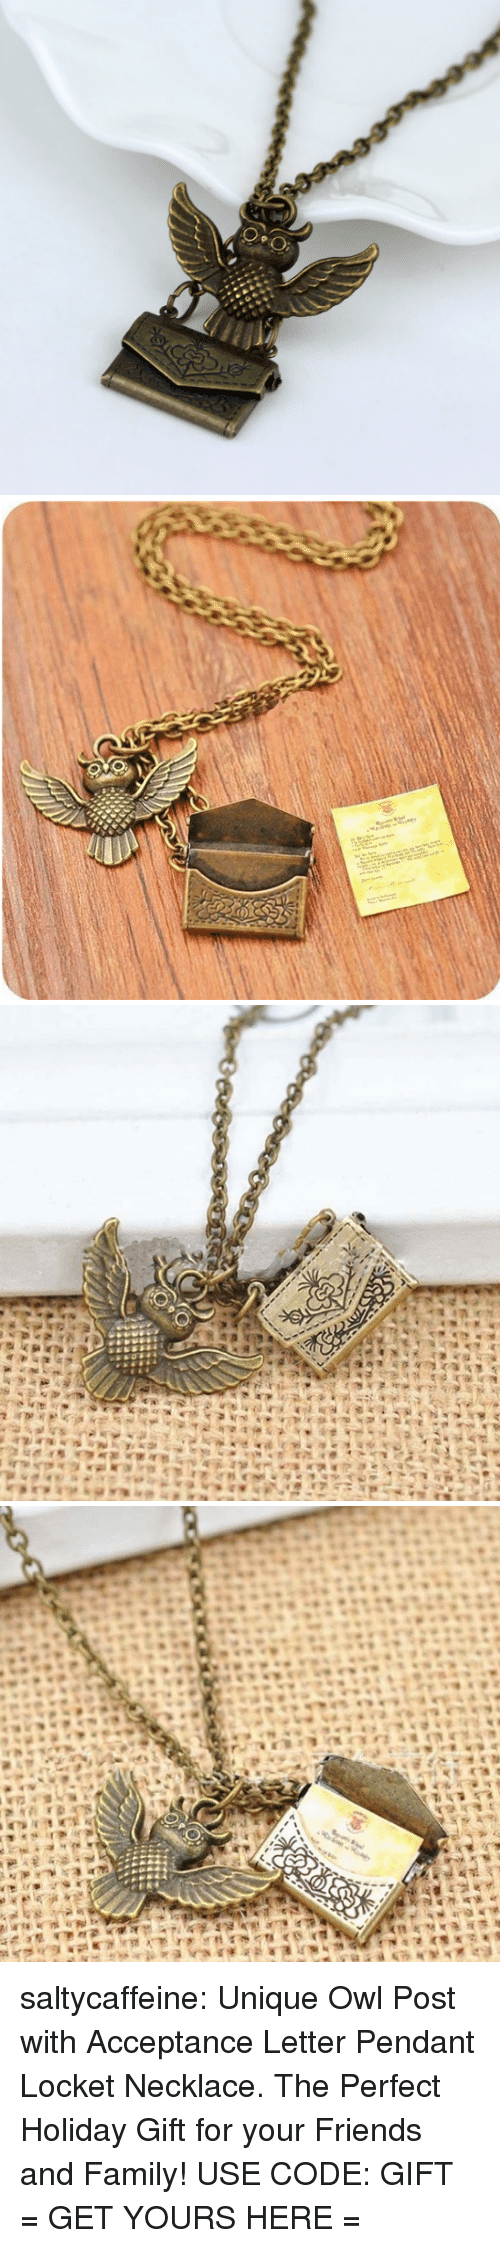 Family, Friends, and Target: saltycaffeine: Unique Owl Post with Acceptance Letter Pendant Locket Necklace. The Perfect Holiday Gift for your Friends and Family! USE CODE: GIFT = GET YOURS HERE =